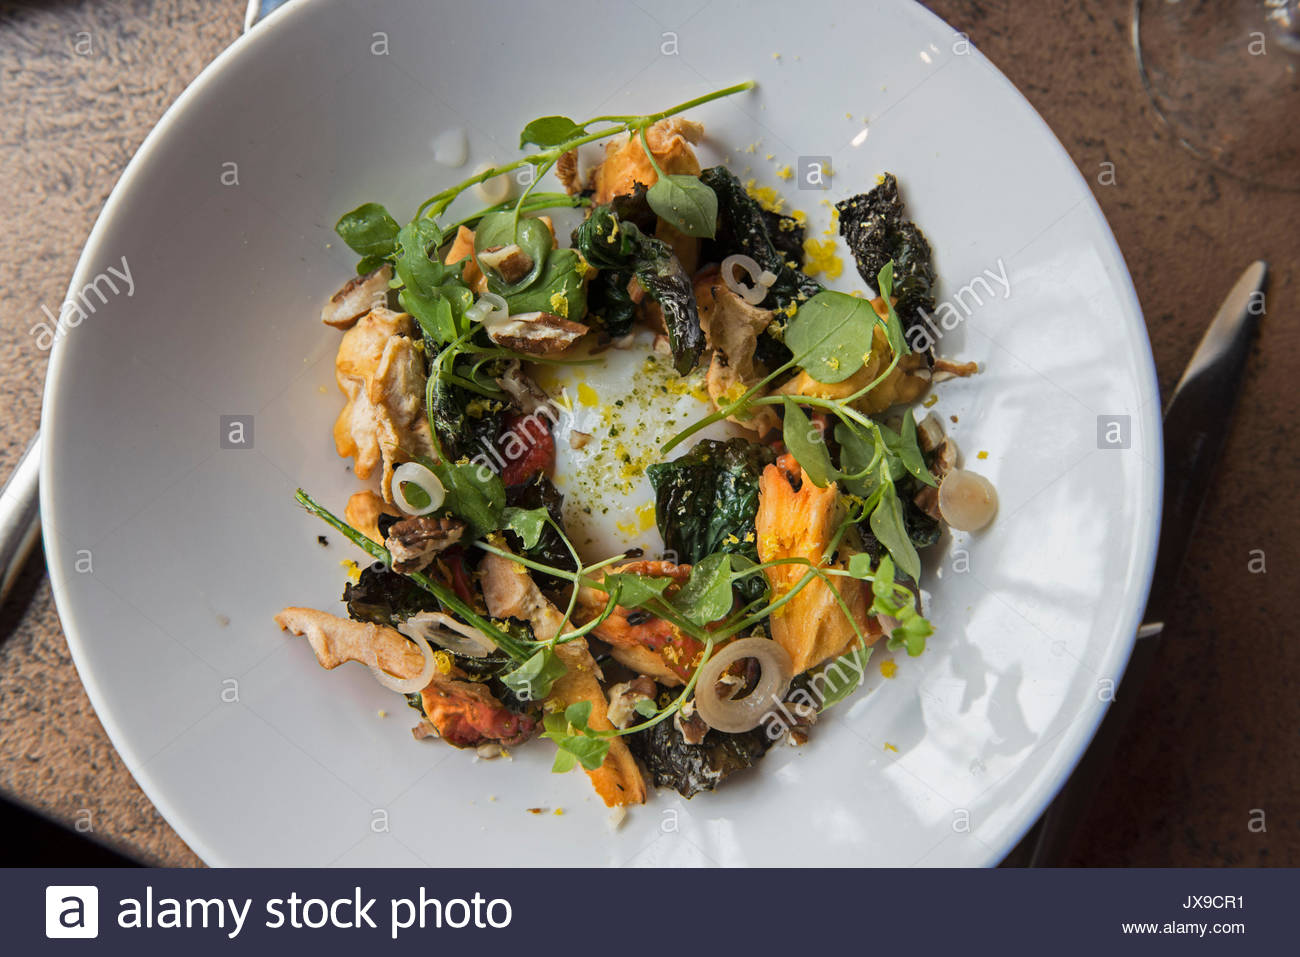 A restaurant serves a meal made with foraged ingredients. - Stock Image